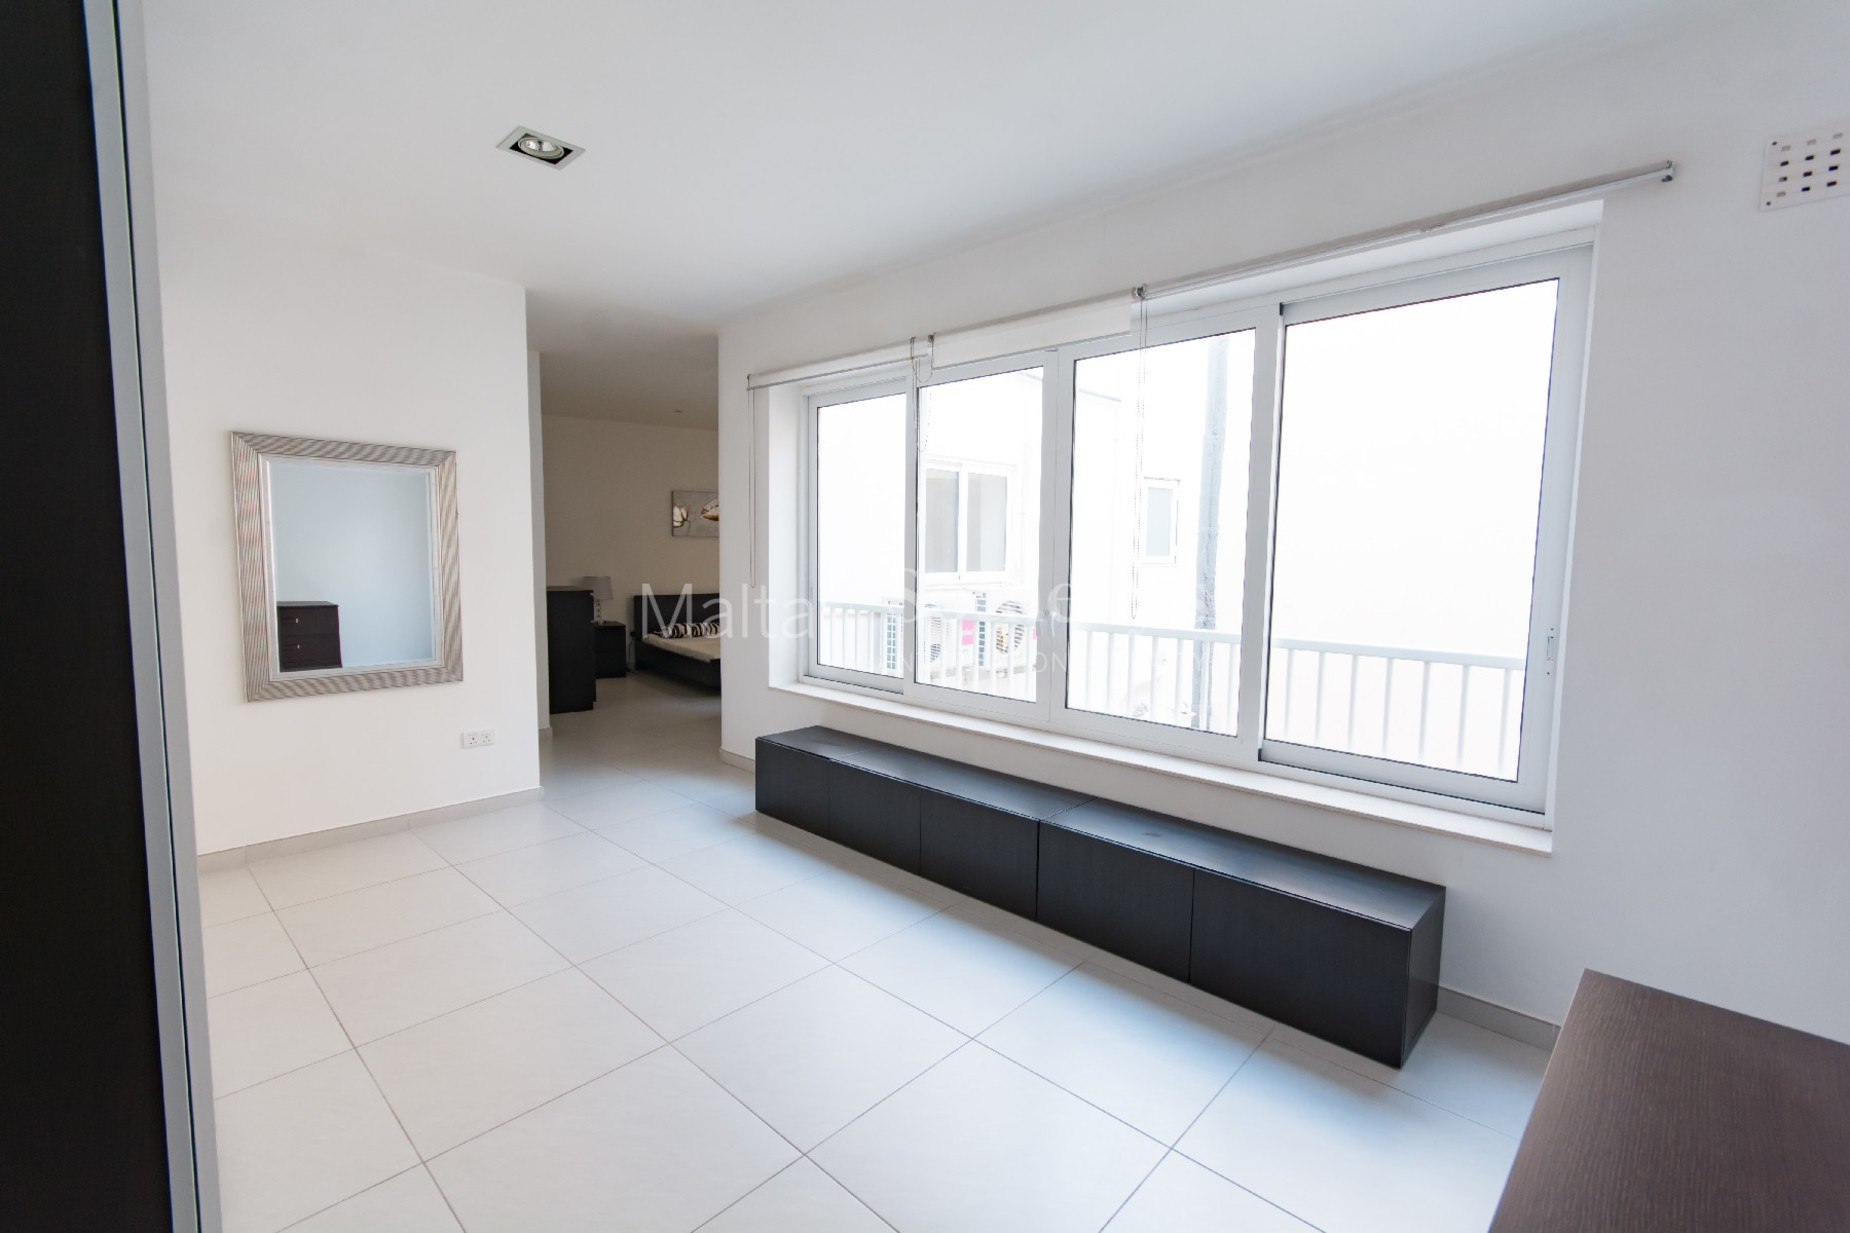 3 bed Apartment For Rent in Sliema, Sliema - thumb 7